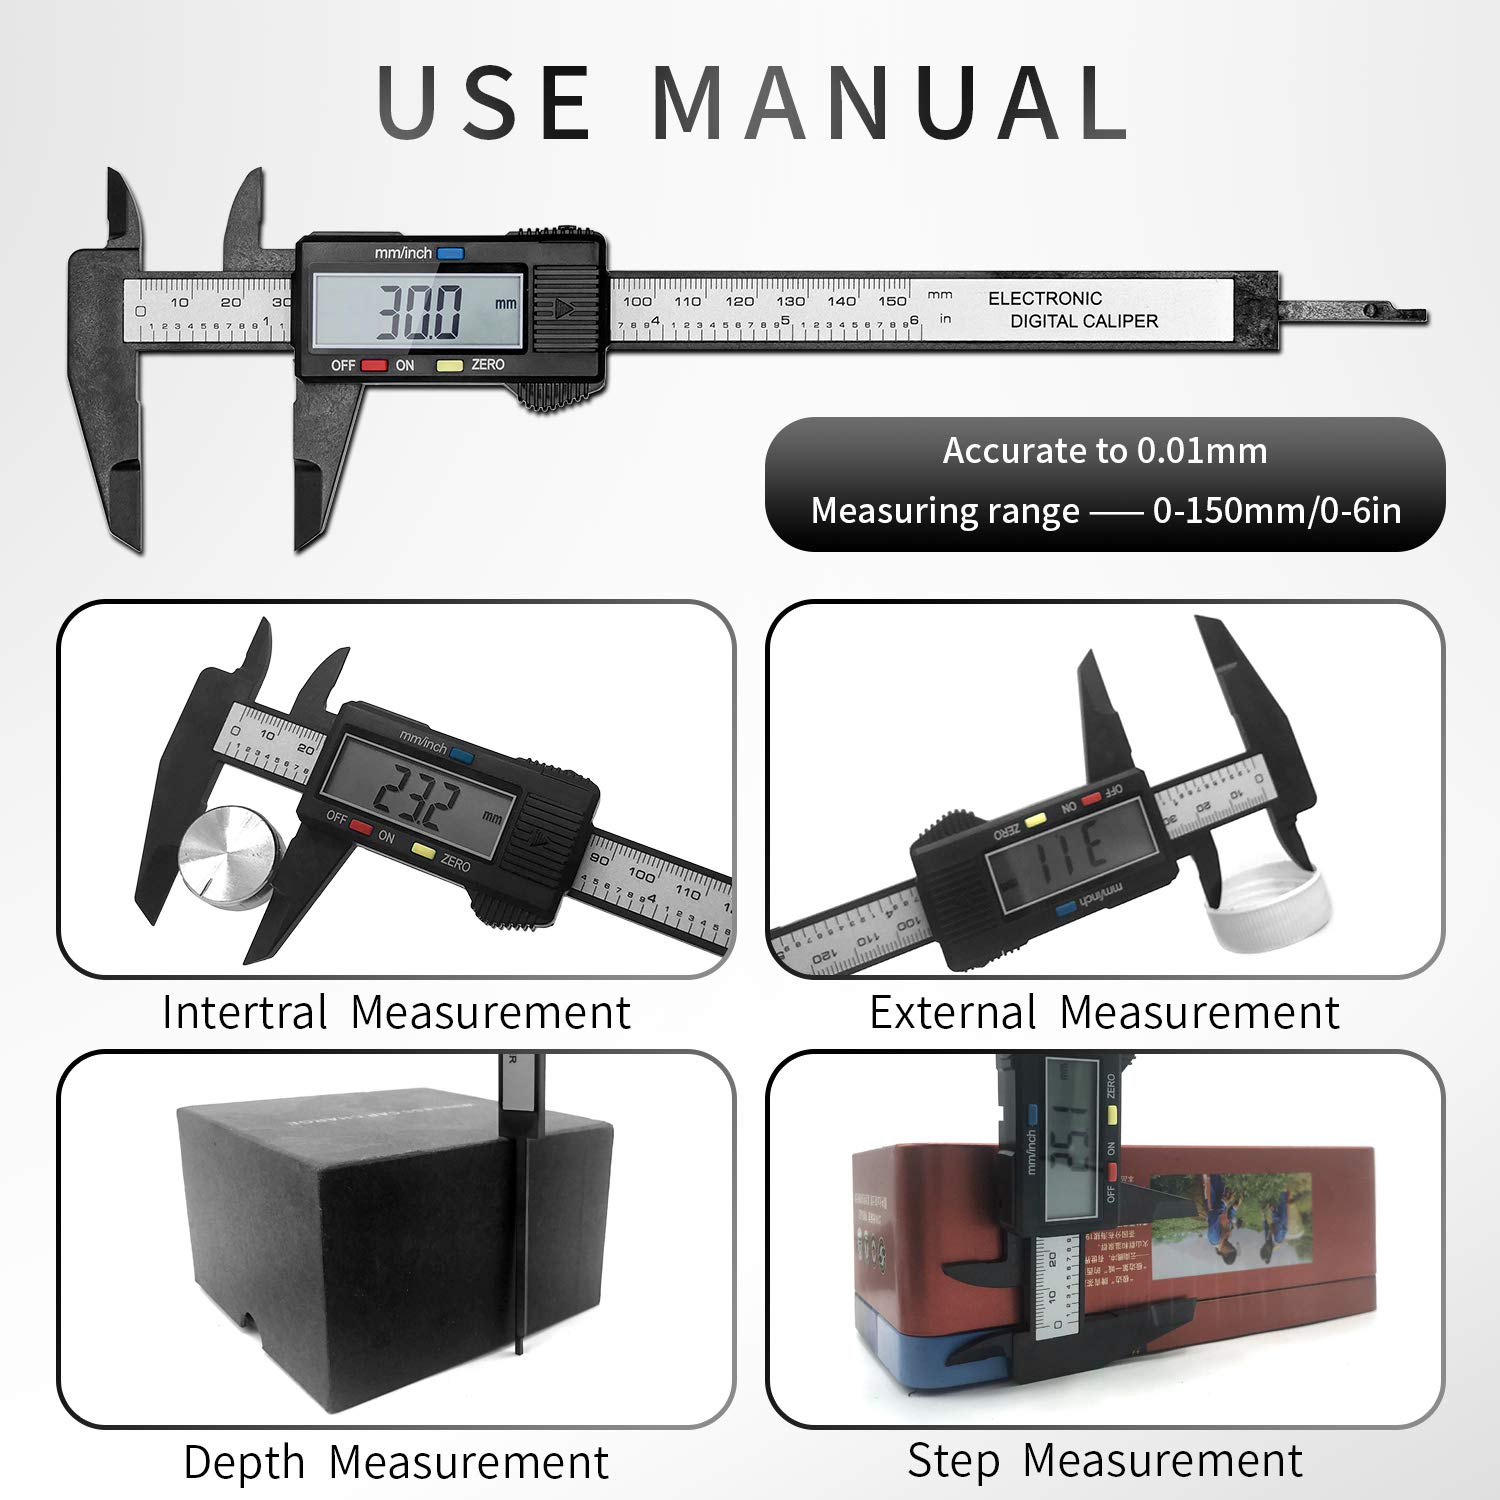 Kormest Electronic Digital Caliper, Plastic Vernier Caliper, Caliper Measuring Tool with Inch/Millimeter Conversion, Extra Large LCD Screen, 0-6 Inch/0-150 mm,recise Measuring Inches & Millimeters